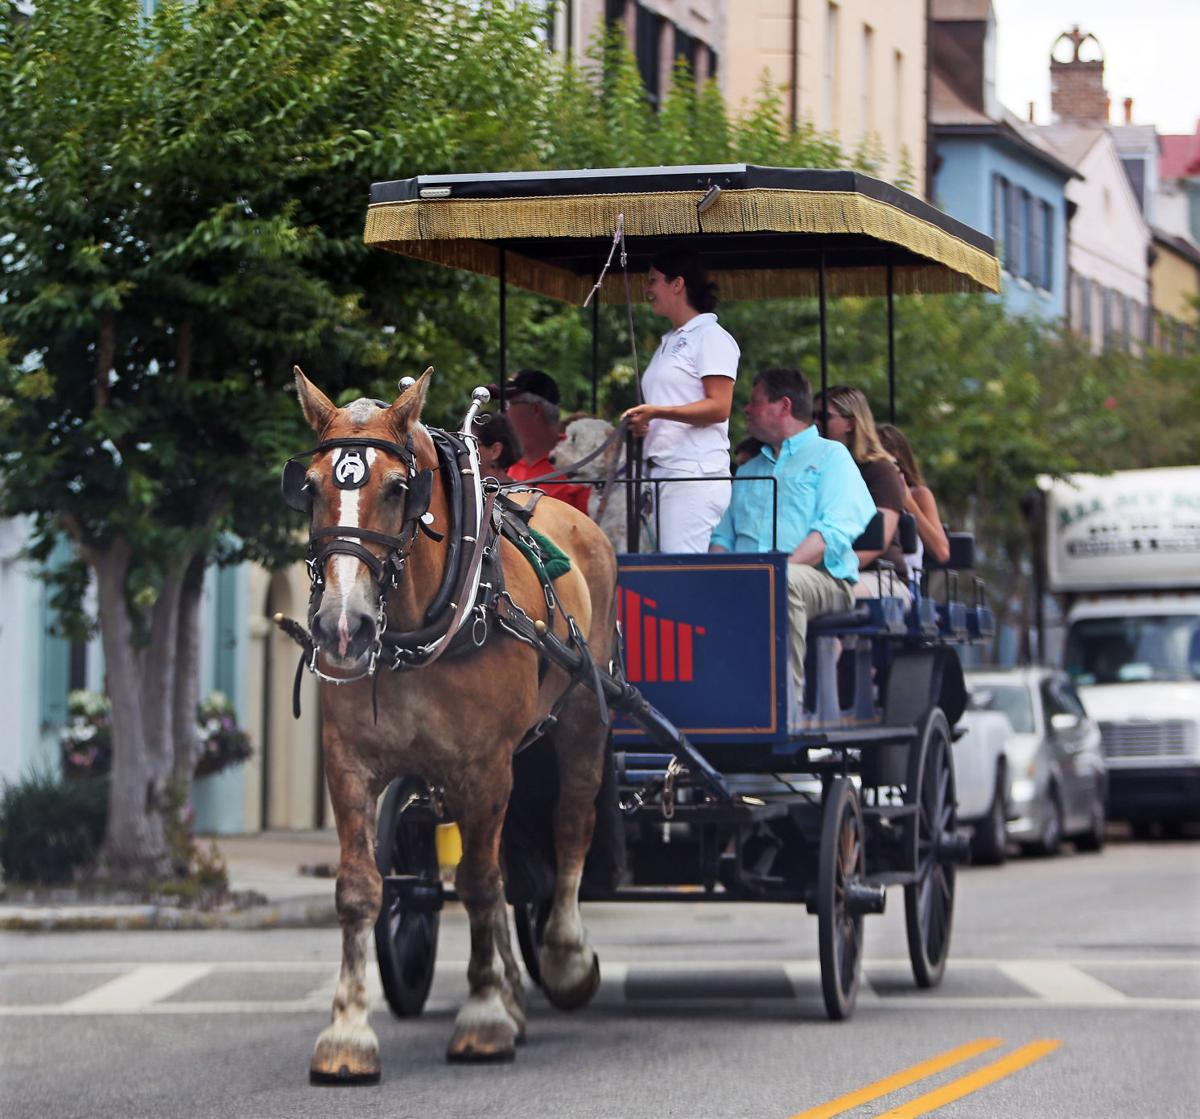 charleston carriage horses pulled off the streets due to heat  prompting mixed reactions